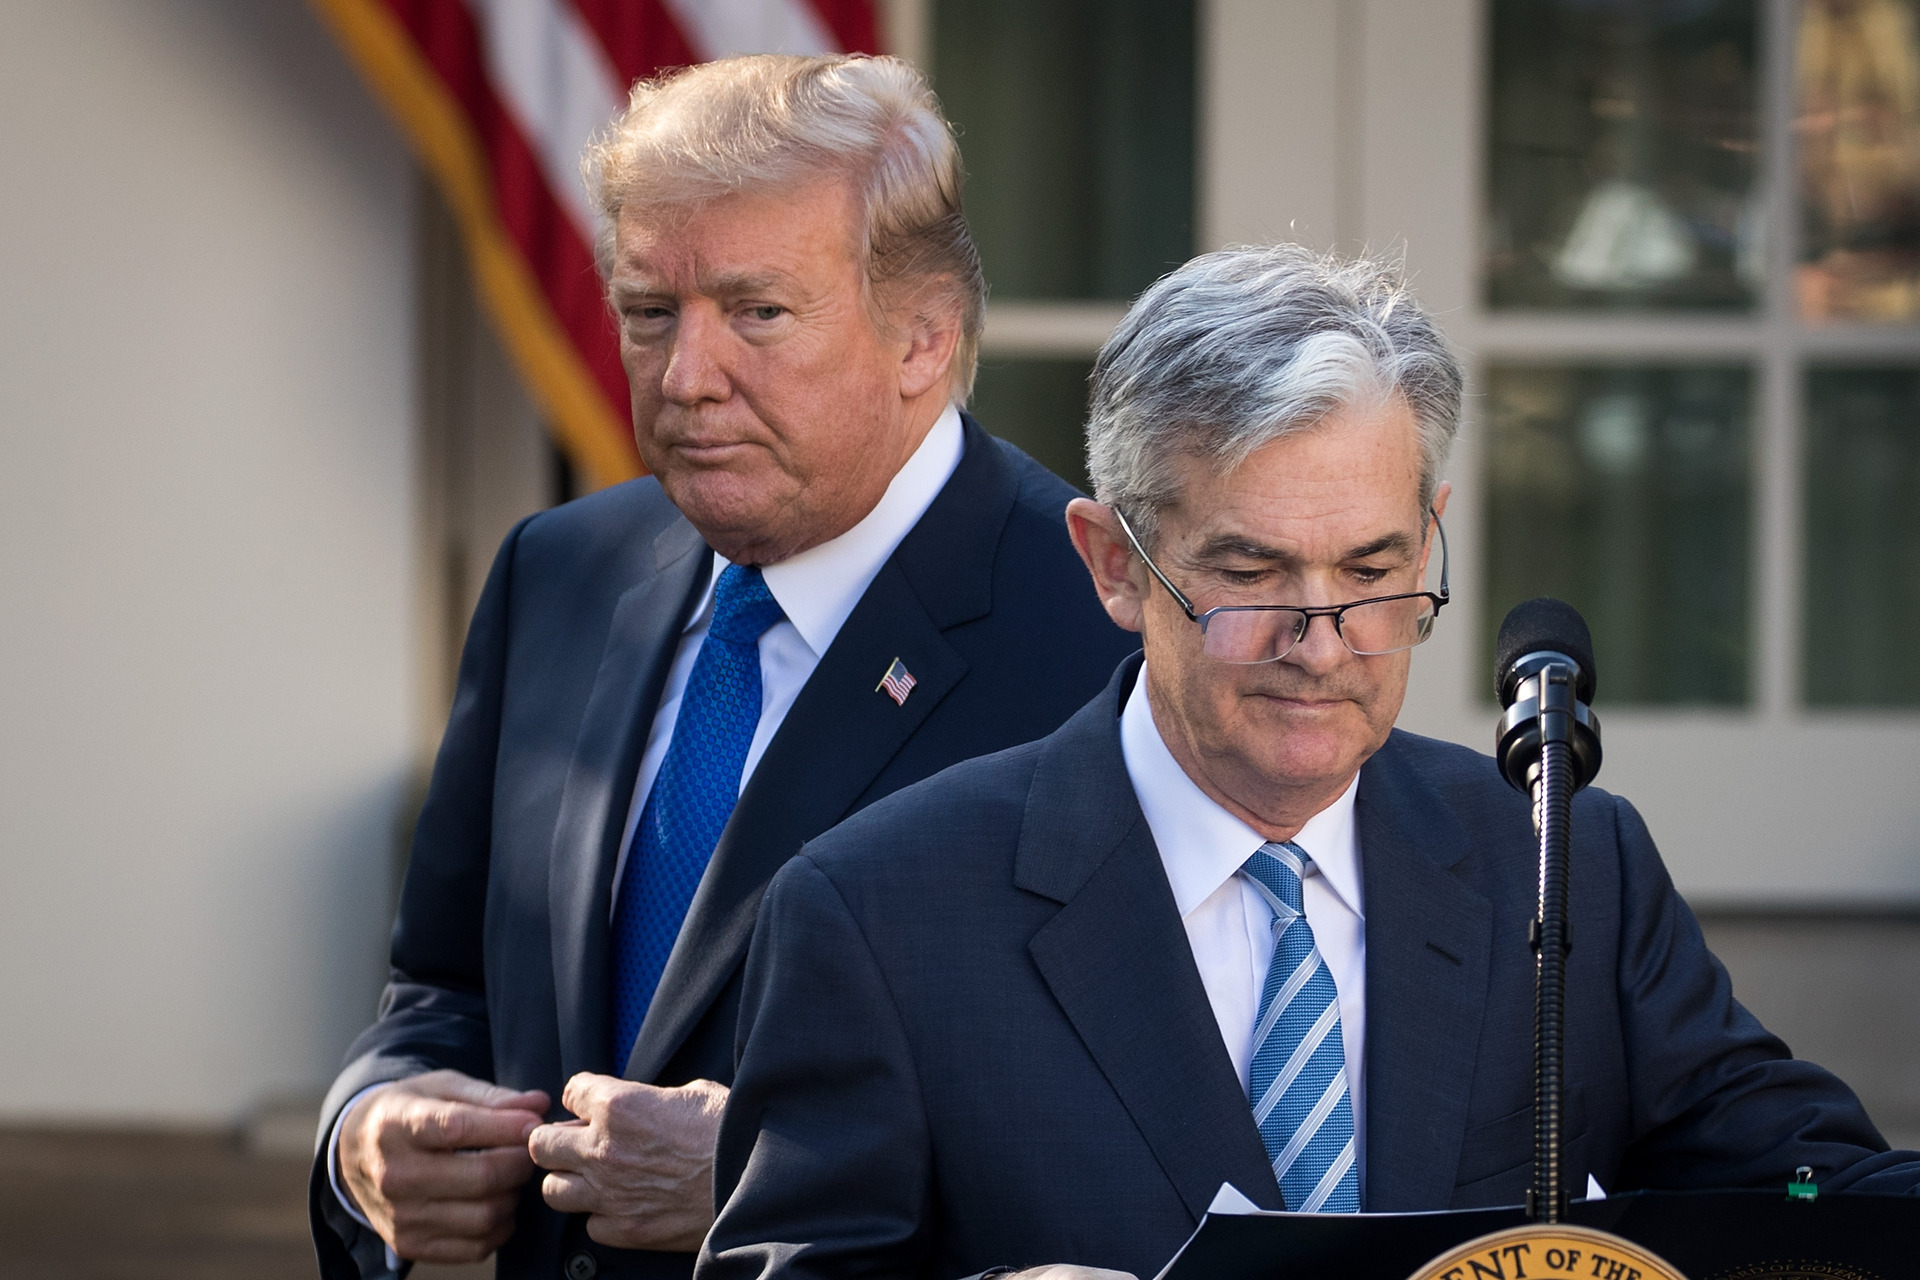 On economy, more Americans see Donald Trump in charge than the Fed chair Jerome Powell